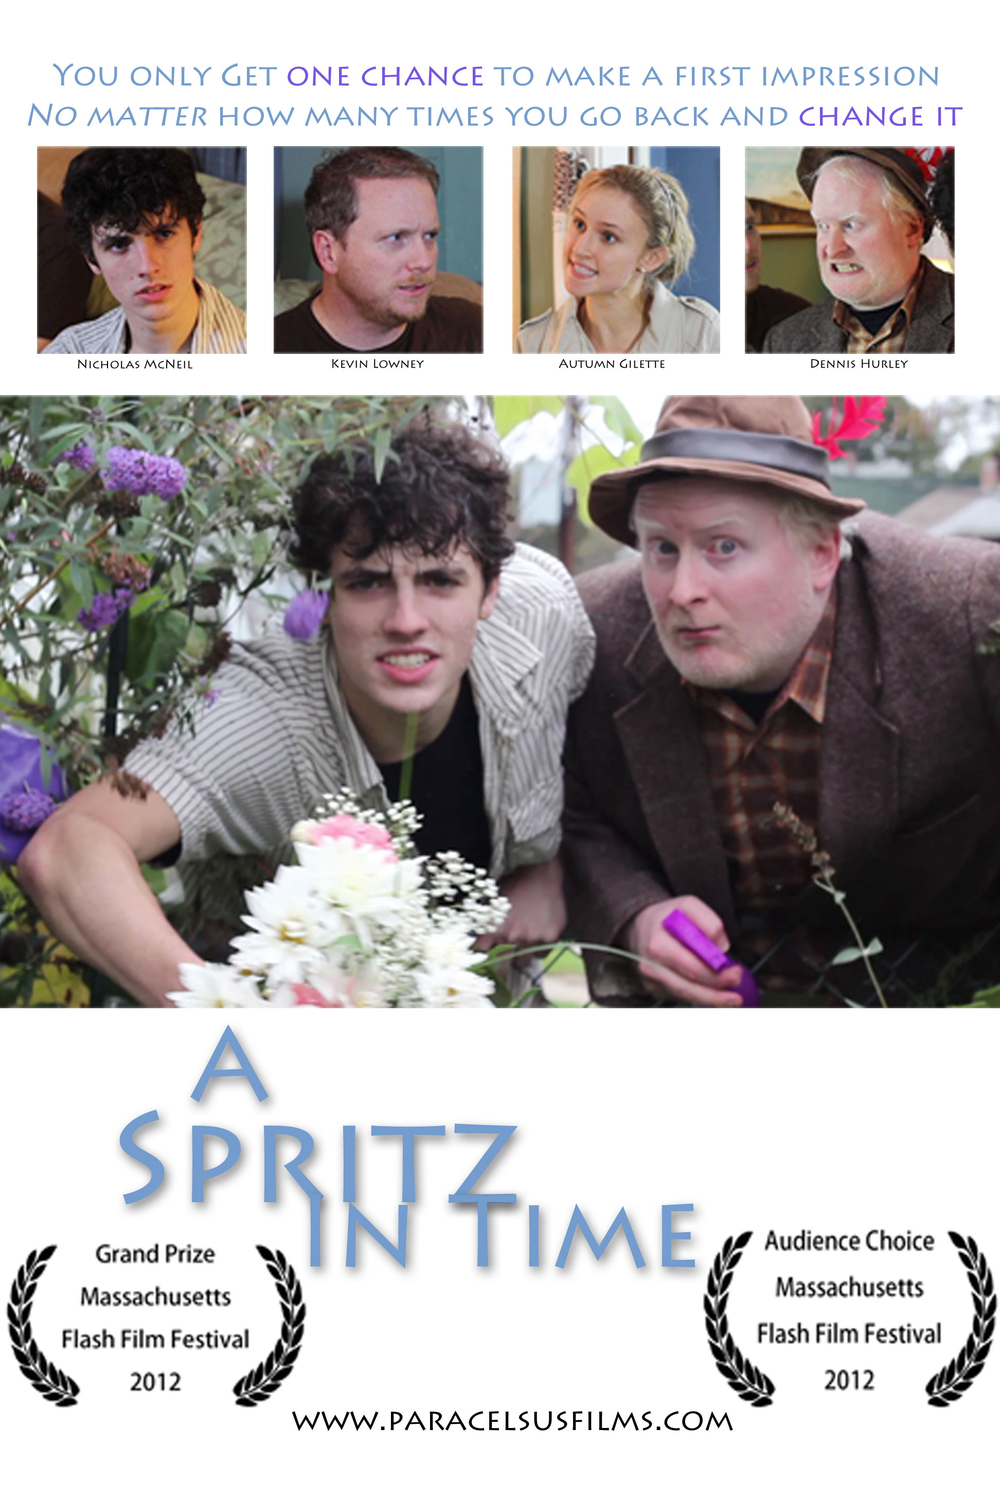 Paracelsus Films Presents A Spritz In Time